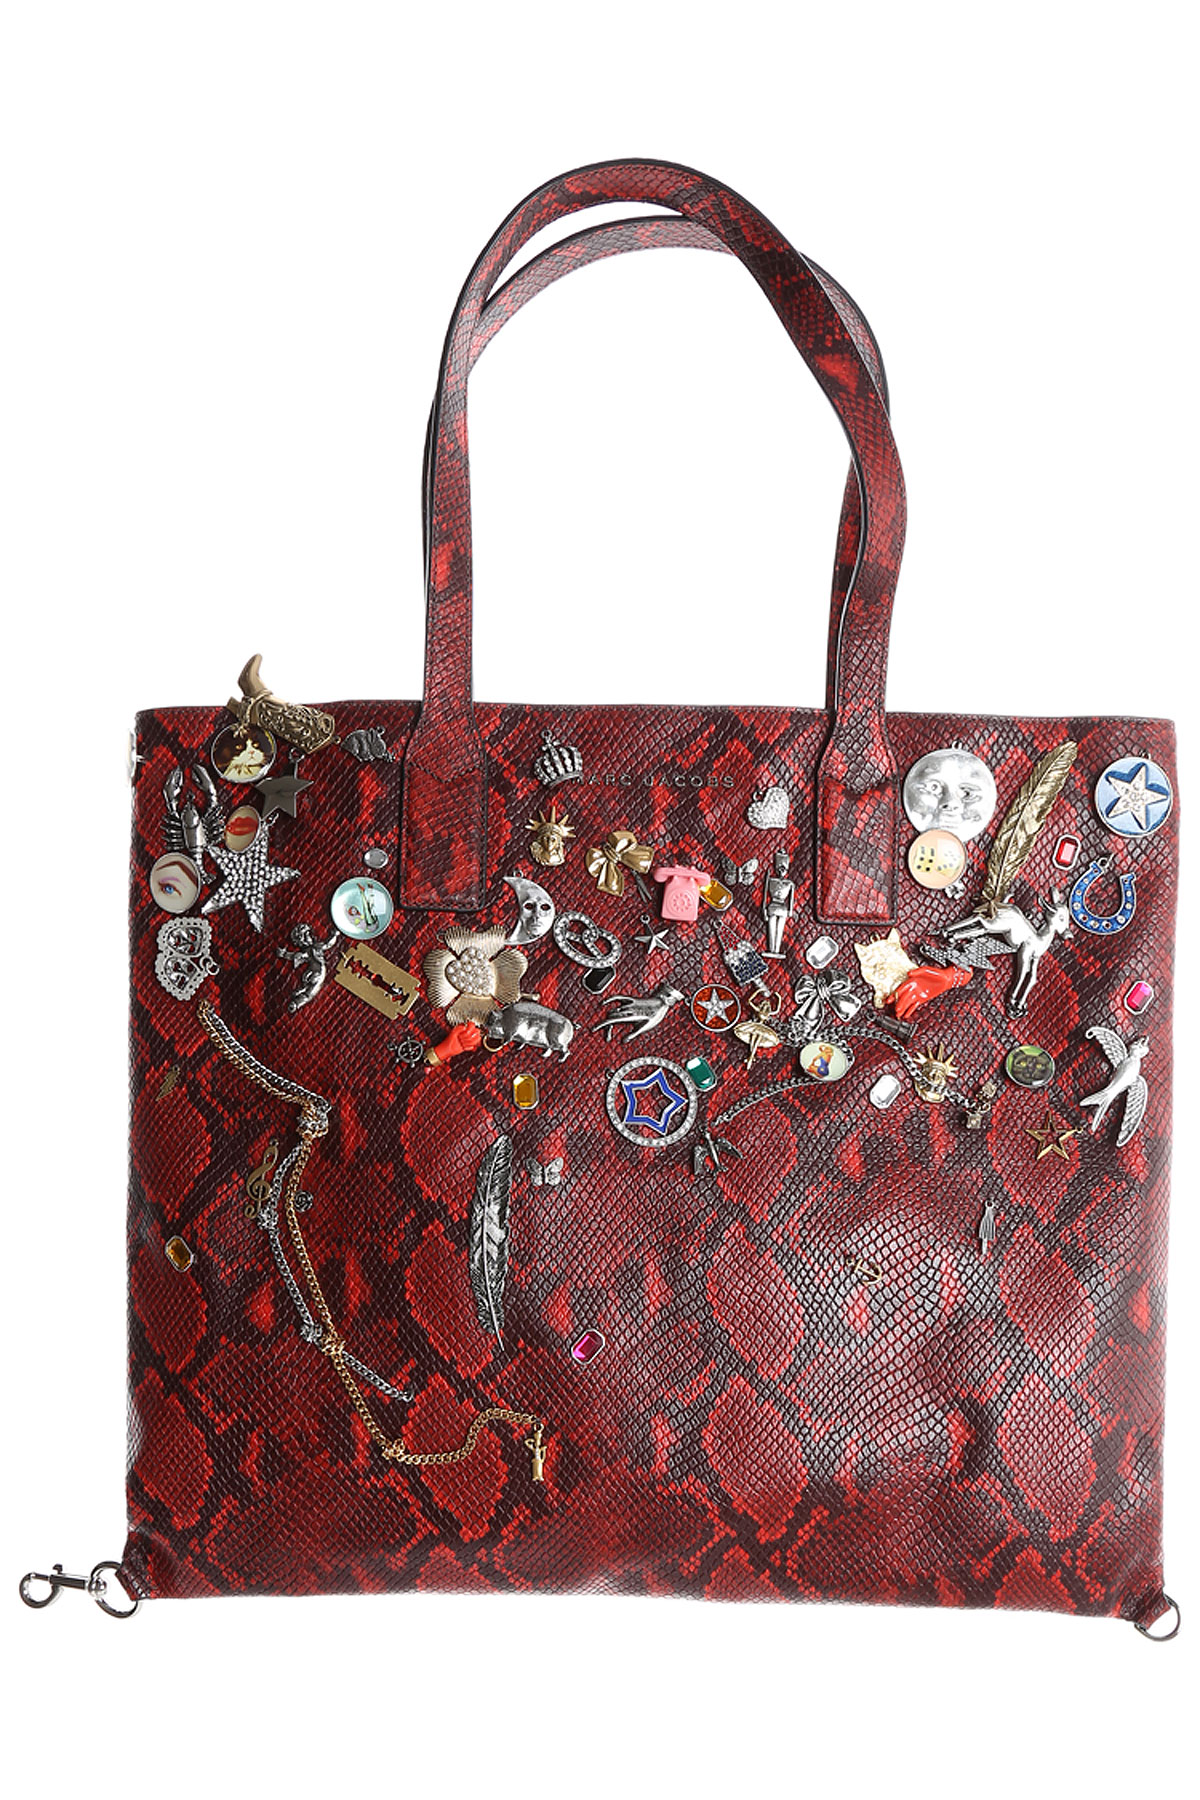 Marc Jacobs Tote Bag On Sale, Bordeaux Red, Leather, 2017 USA-361749